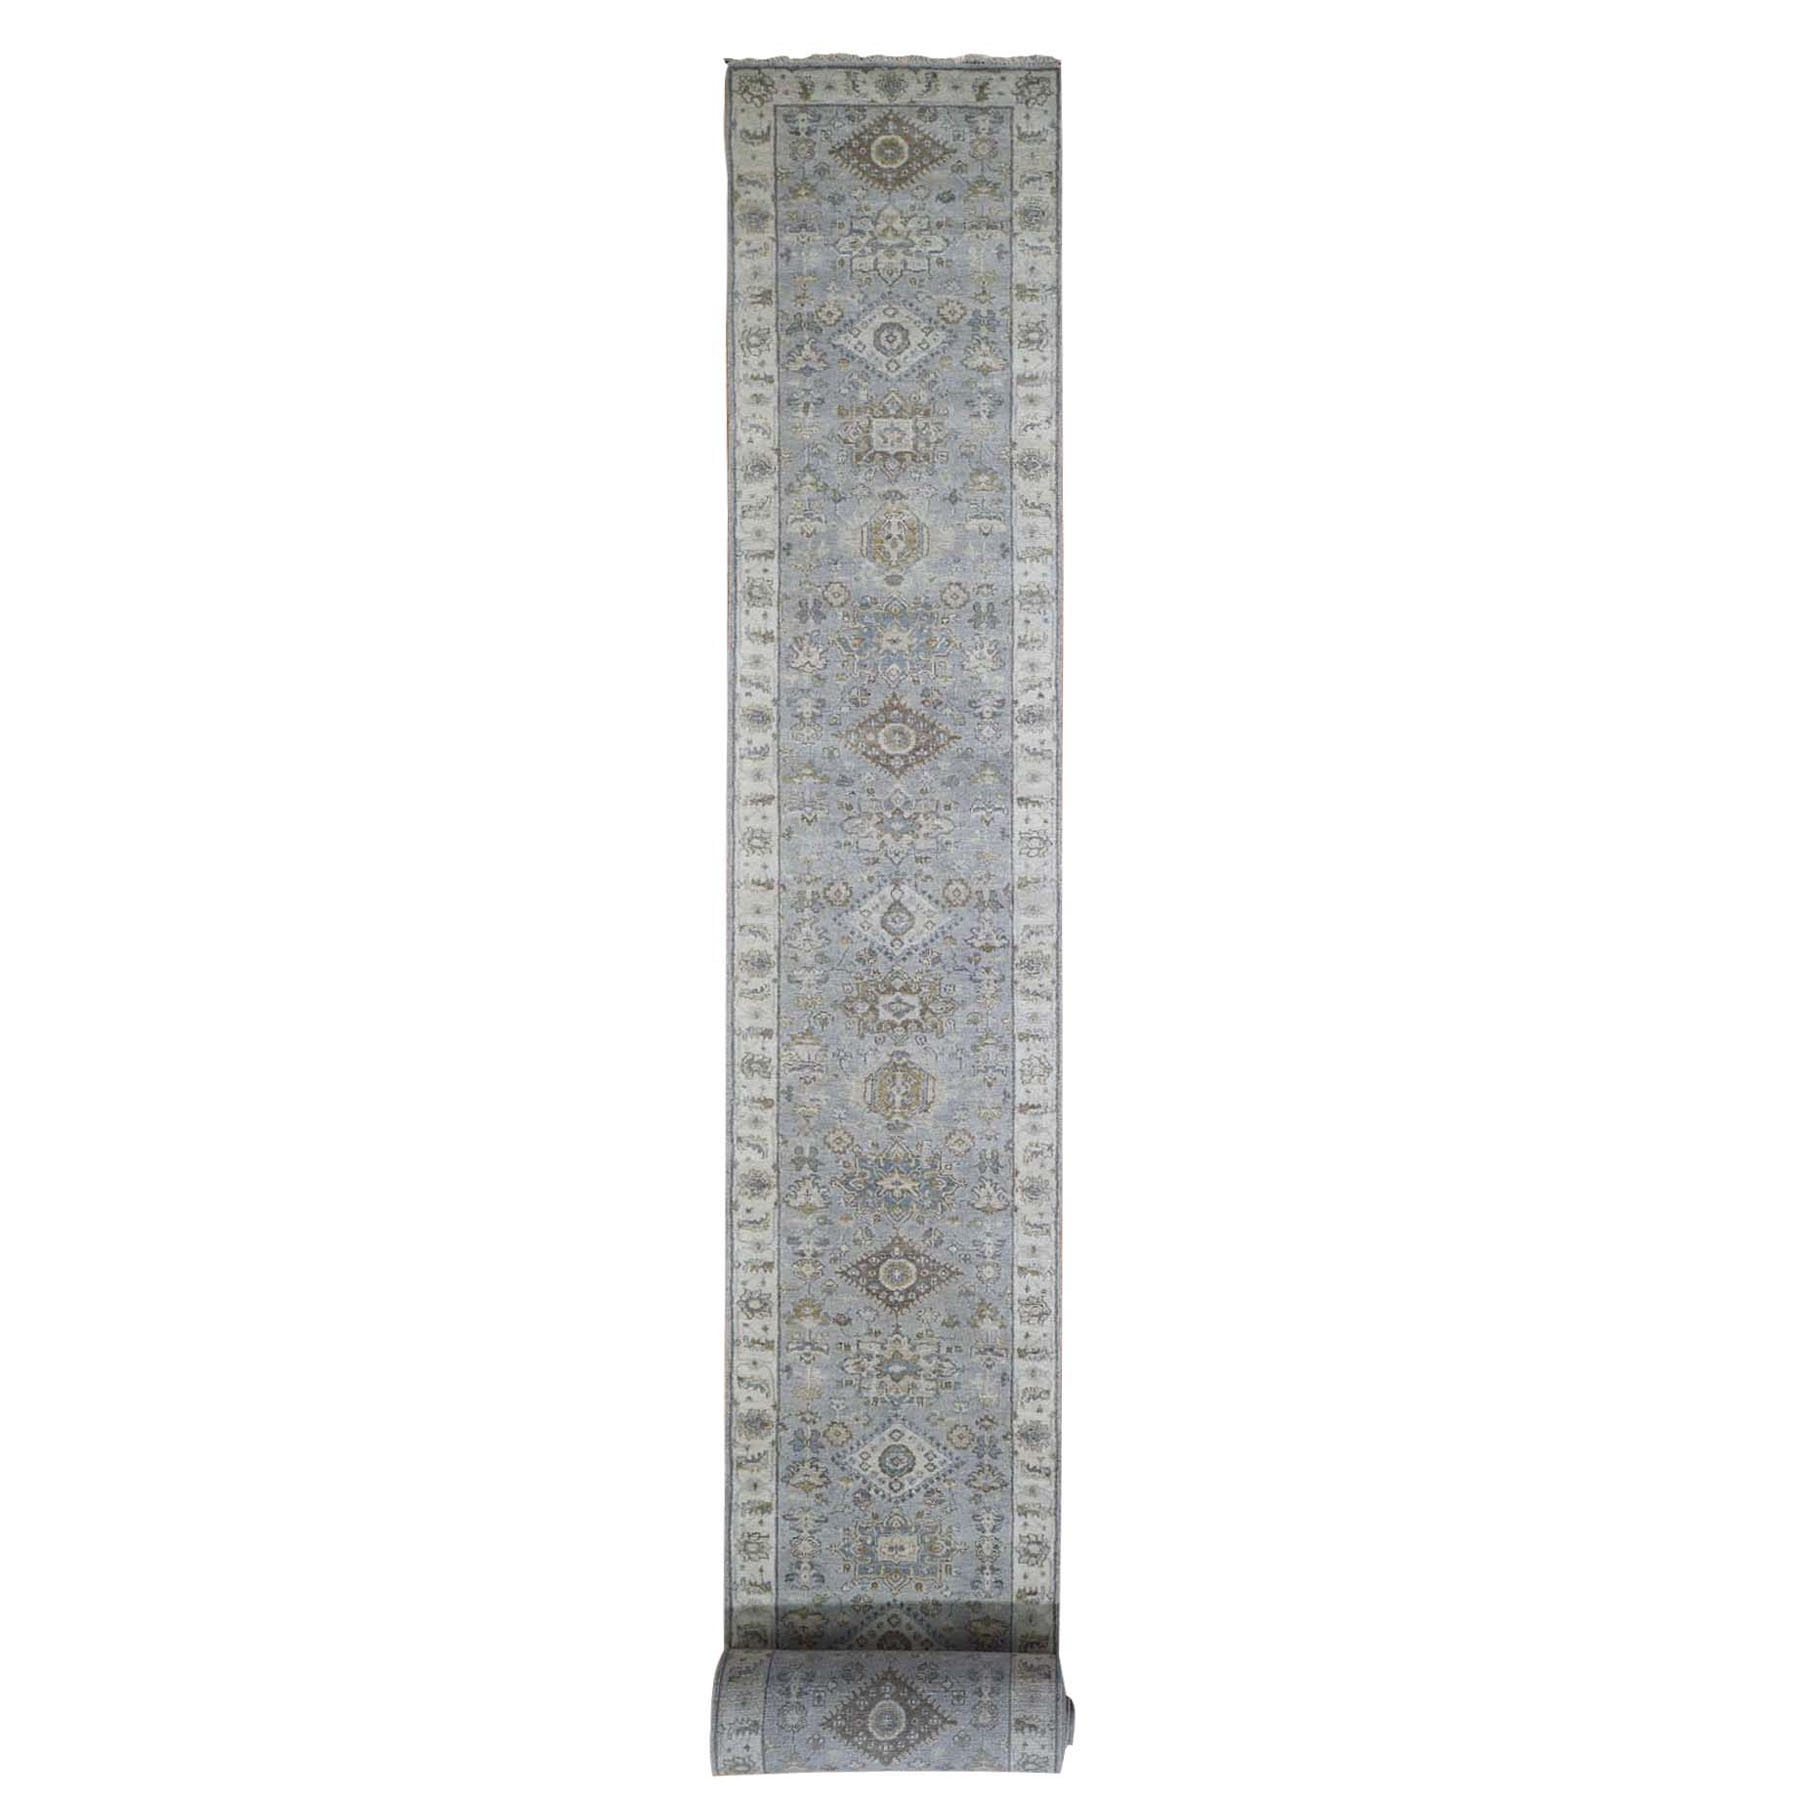 "2'8""X22' Gray Karajeh Design Pure Wool Hand Knotted Xl Runner Oriental Rug moad9dce"